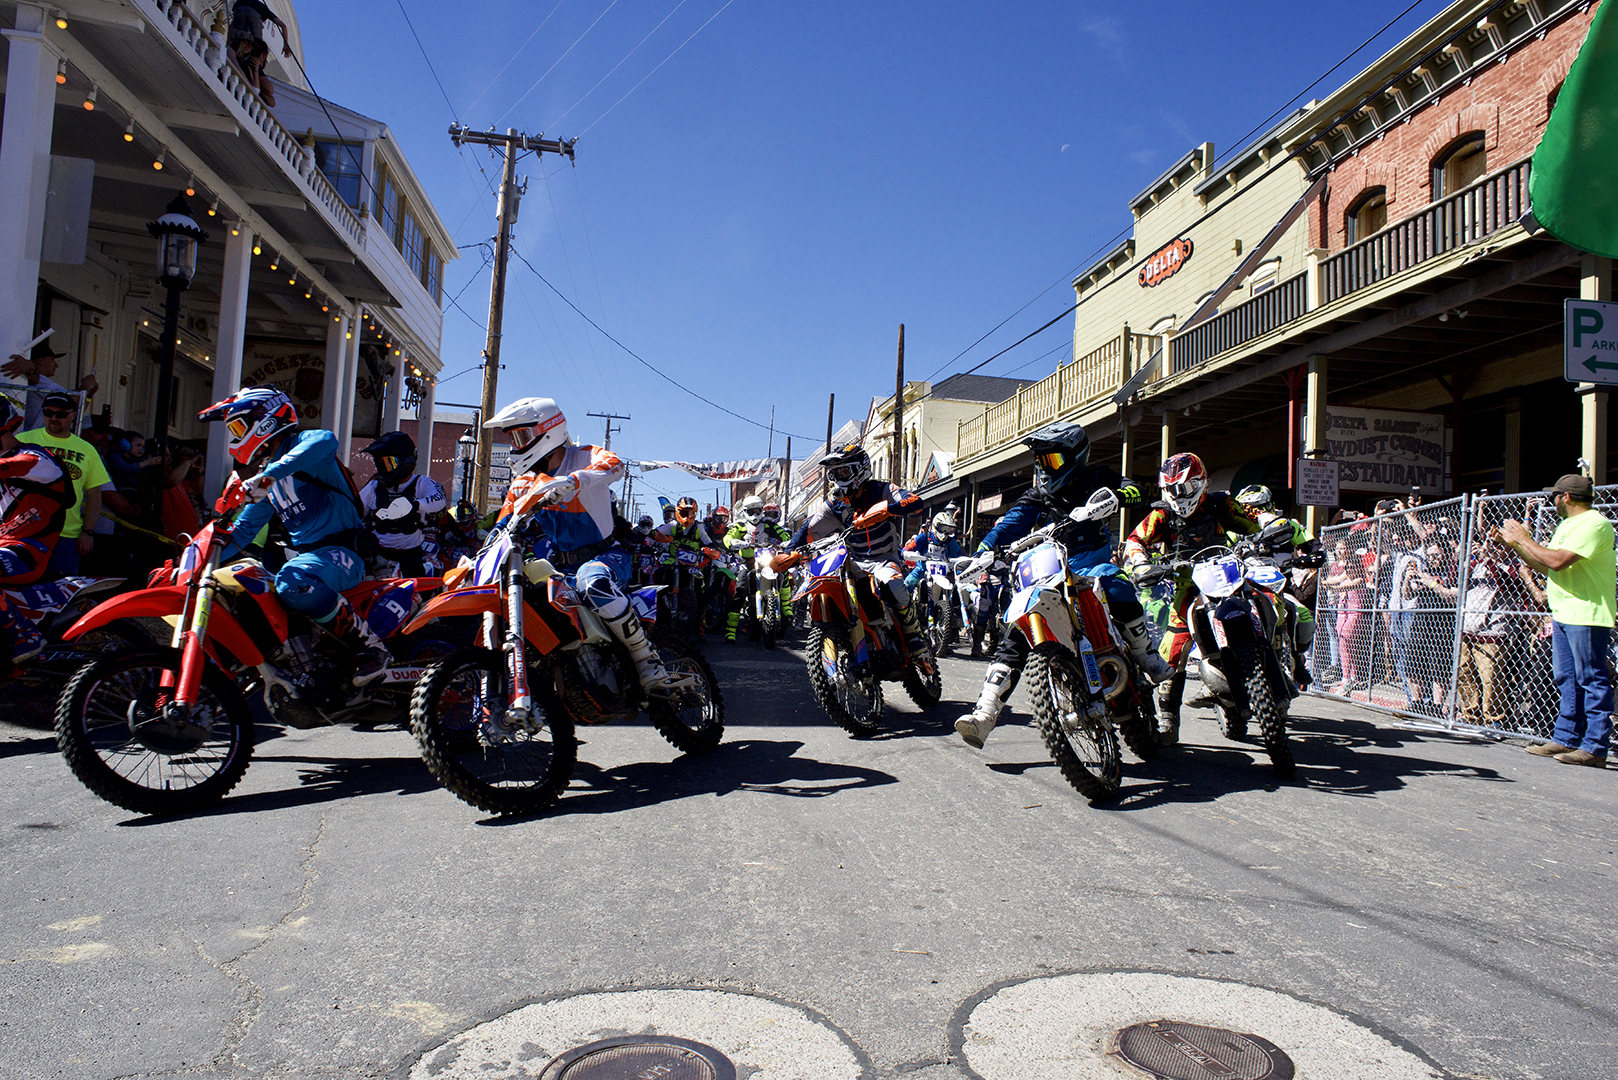 The front row heads out at the green flag. All the riders line up along C street which brings the excitement and drama of the start to the heart of Virginia City.